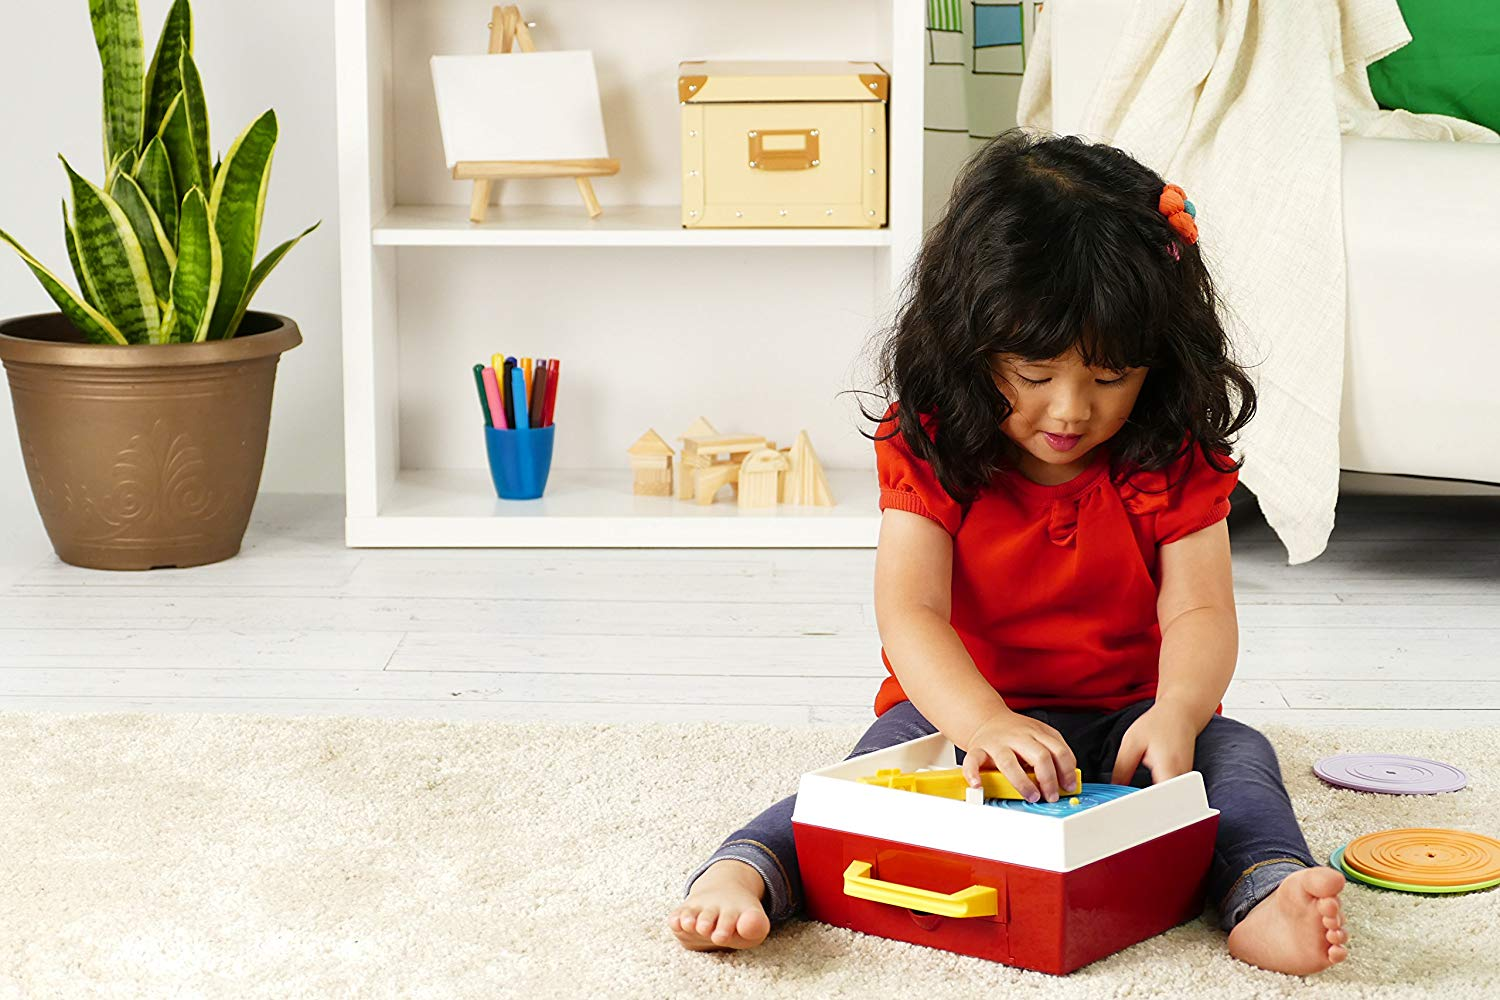 The Fisher Price Classics Retro Record Player is a classic toy.